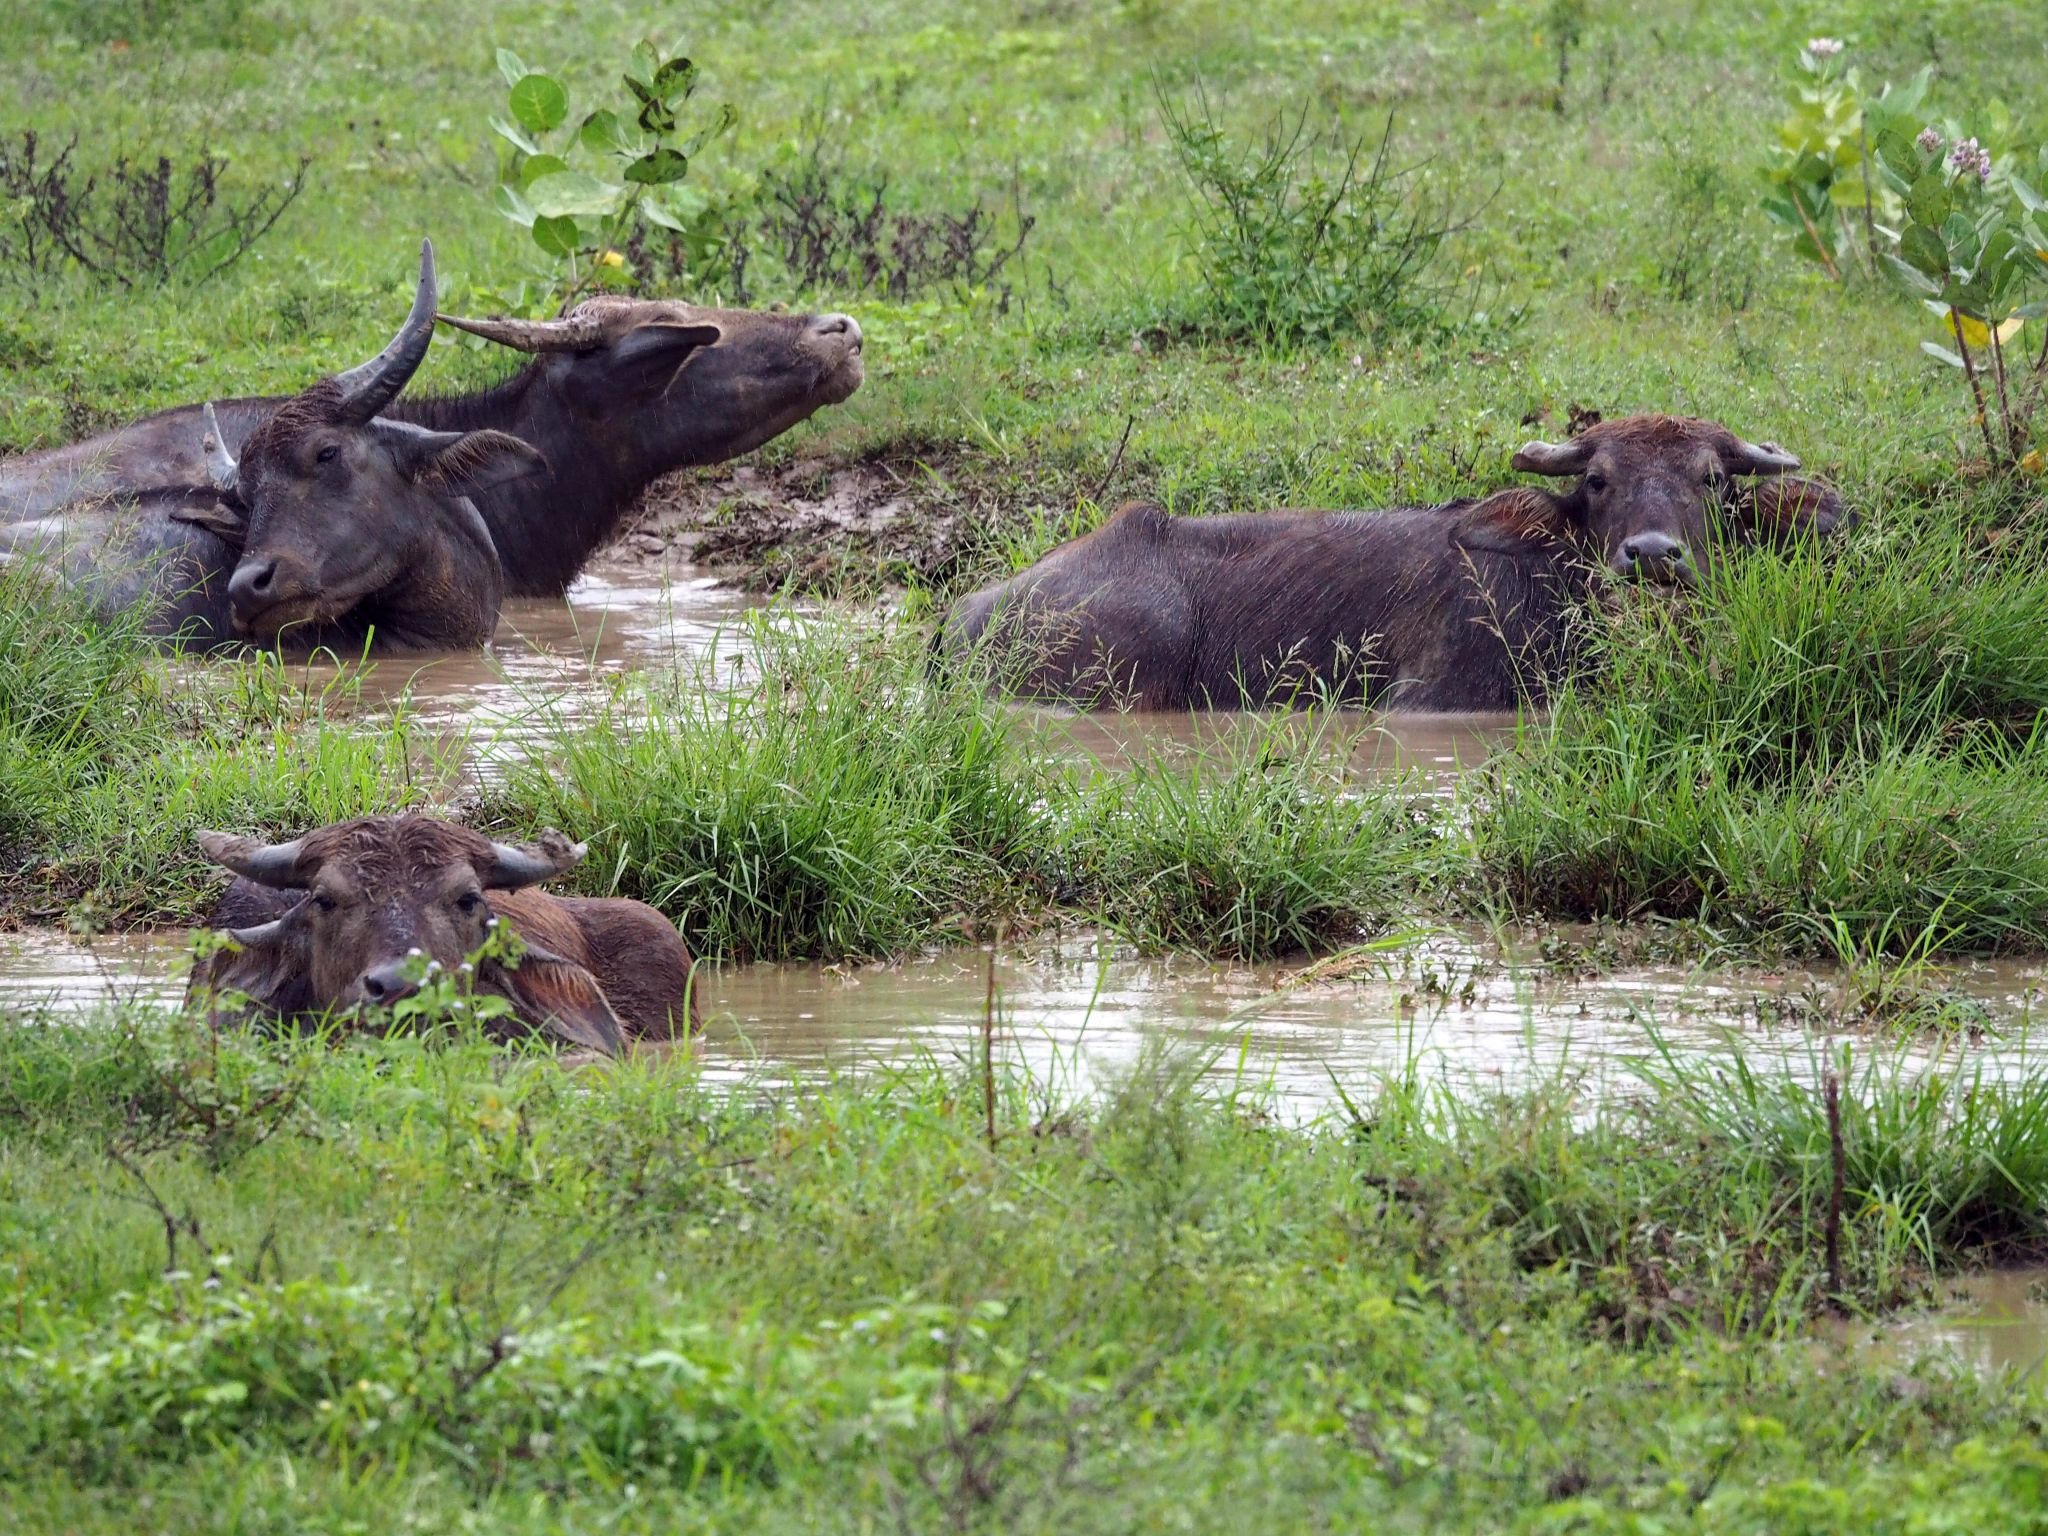 Water buffalo in water Udawalwe National Park